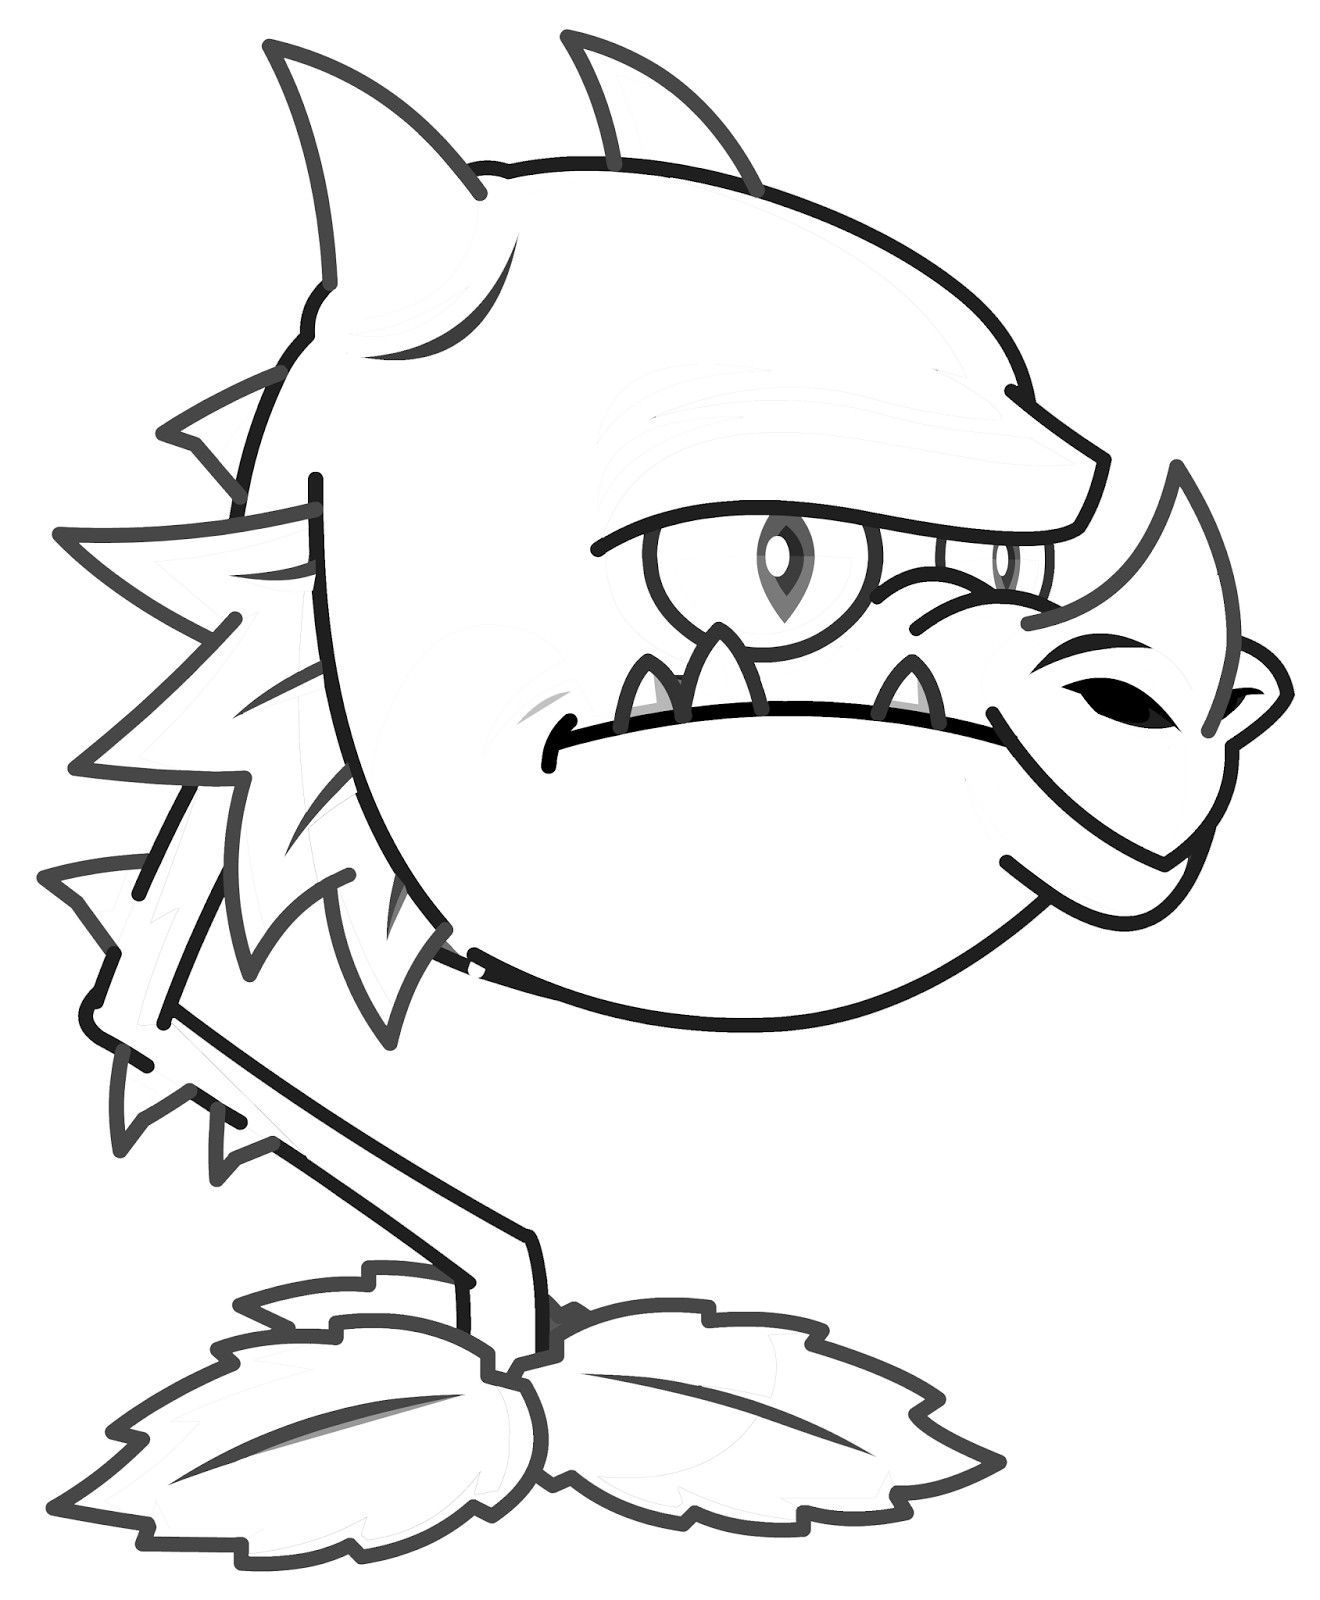 disney channel zombies coloring pages google image result for httpthesnowydayplaycomx2019 zombies channel pages coloring disney